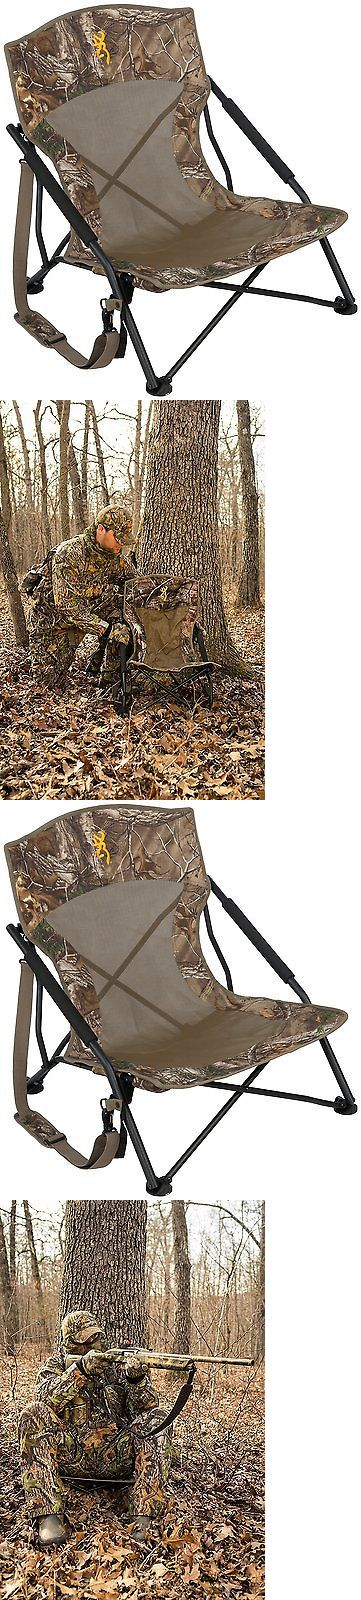 Seats and Chairs 52507: Browning Outdoor Folding Chair Turkey Deer Hunting Camping Camouflage Stand Sit BUY IT NOW ONLY: $49.0